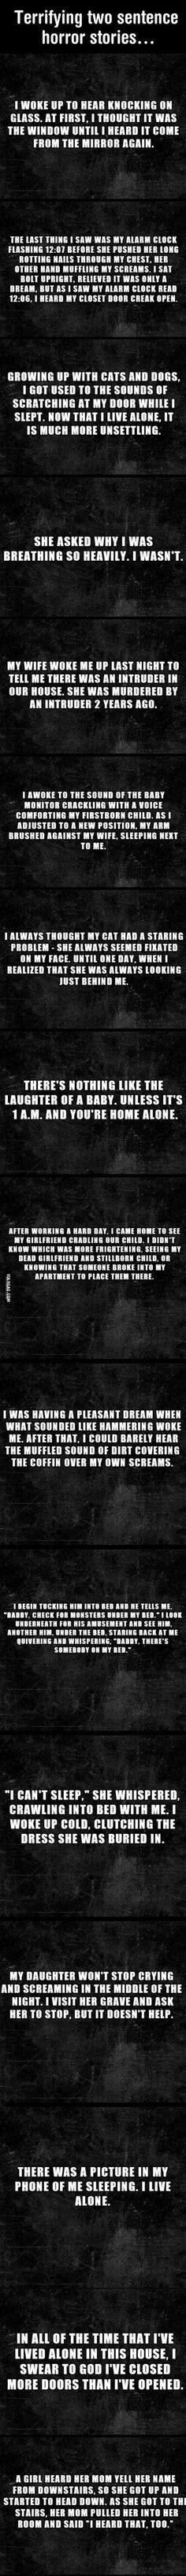 Terrifying Two Sentence Horror Stories scary creepy story unusual interesting ghosts stories paranormal Short Scary Stories, Scary Creepy Stories, Ghost Stories, Creepy Stuff, Scariest Stories, 2 Sentence Horror Stories, Funny Sites, Movie Blog, Writing Prompts